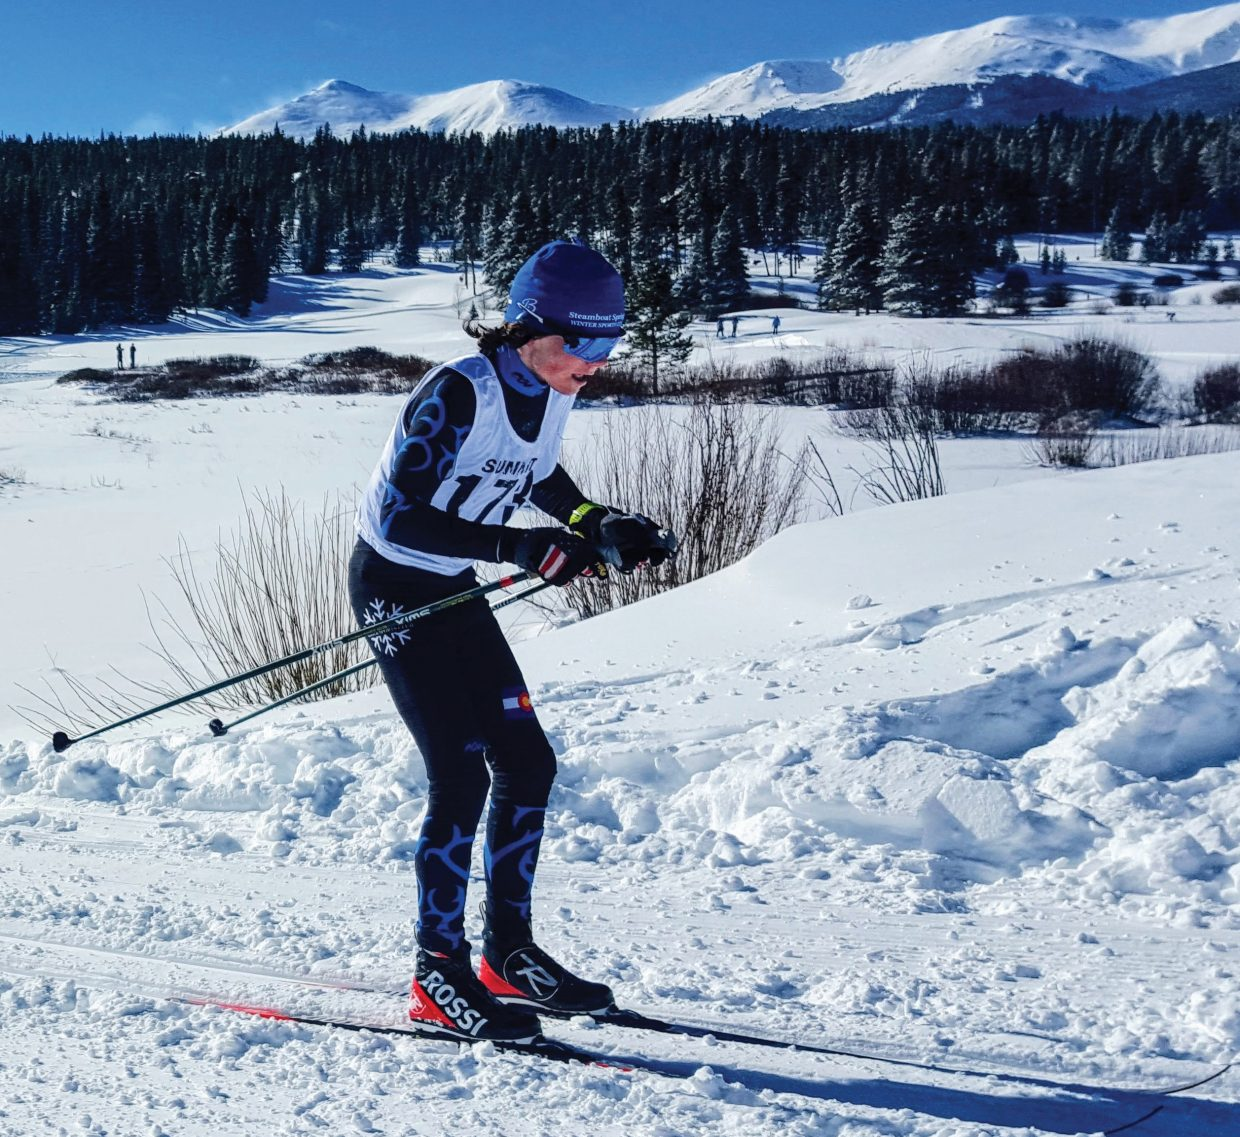 Chase High raced at Gold Run in Breckenridge last weekend.